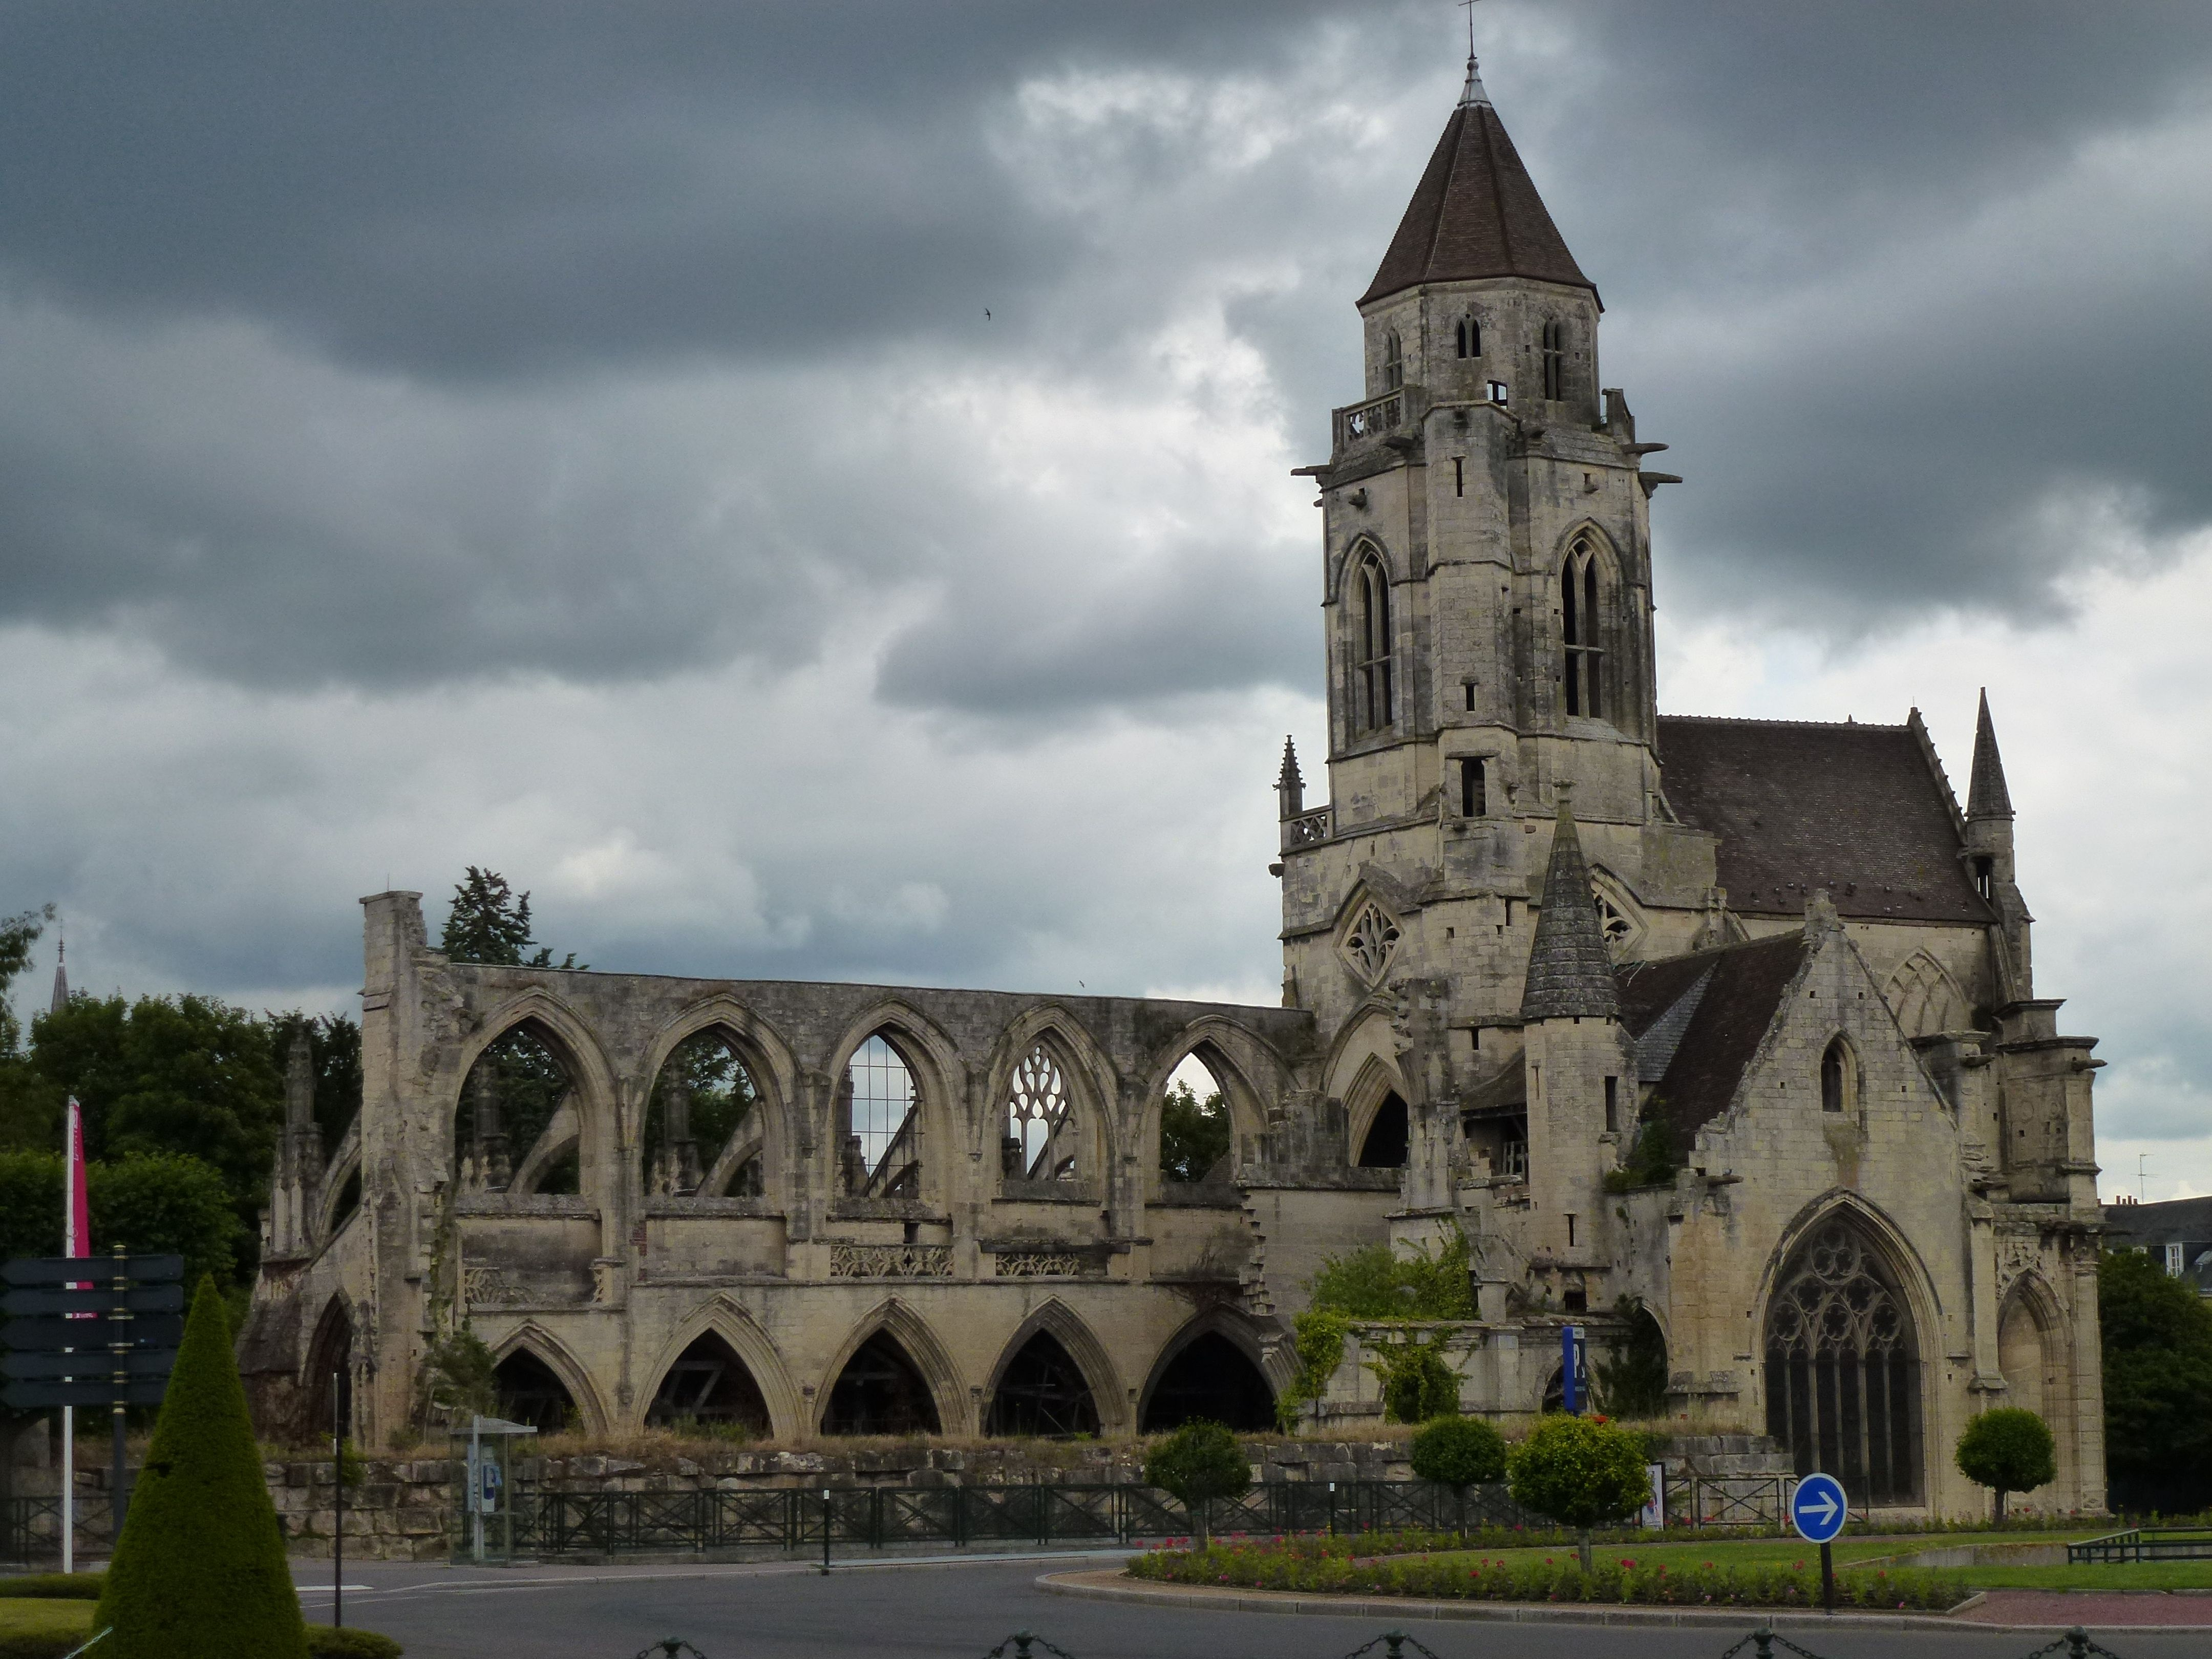 The ruins of 'St-Etienne-le-Vieux' in Caen (Normandy, France). First recorded in 1066, but it was probably built earlier. The old church was partly destroyed in a bombing of 1944.